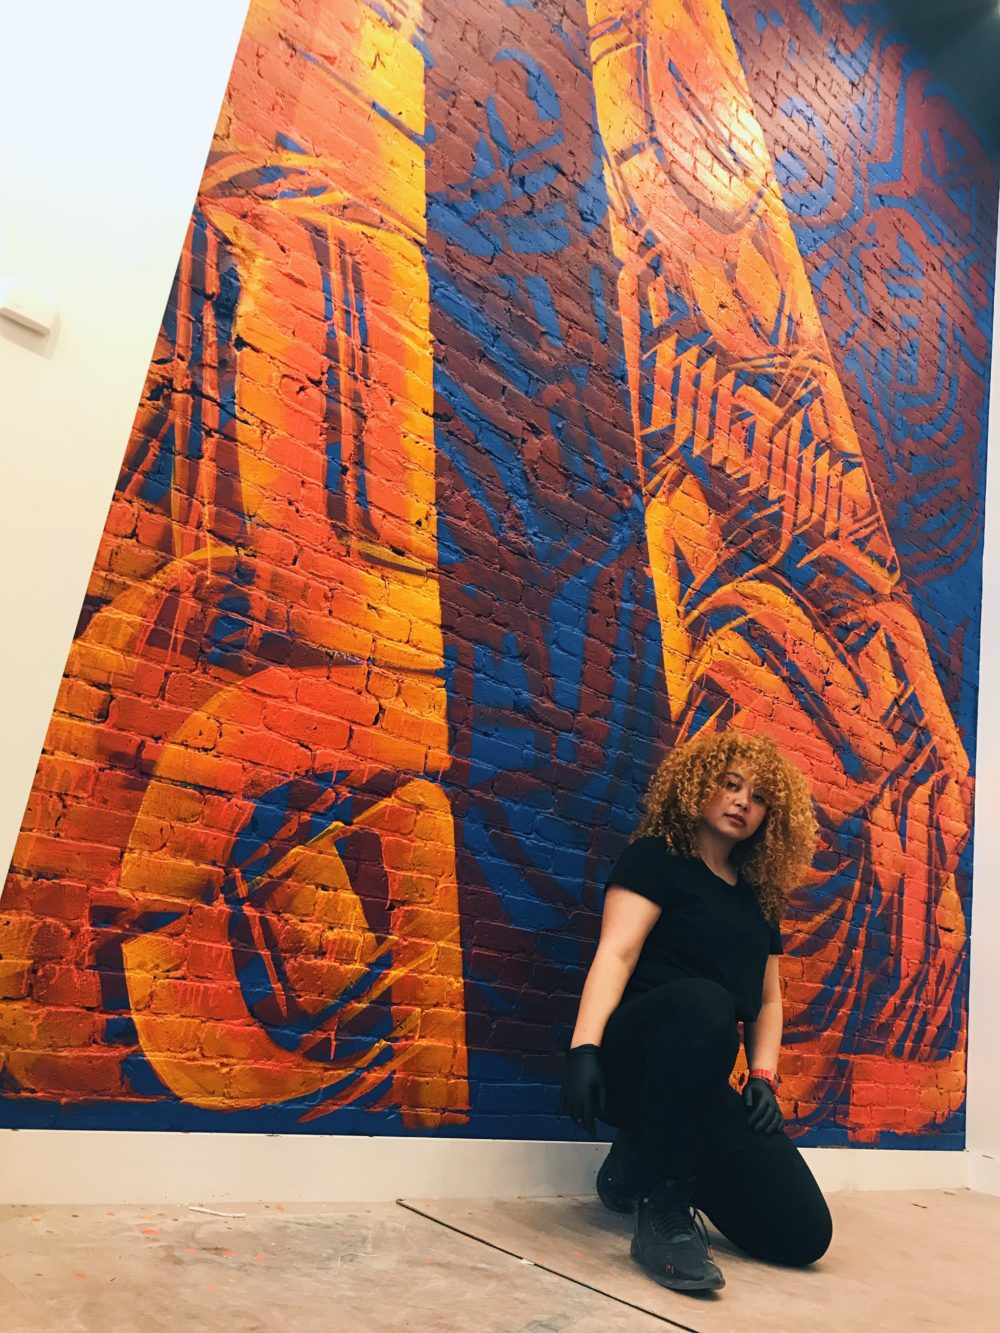 Artist Sneha Shrestha in front of one of her murals. (Courtesy of the artist)